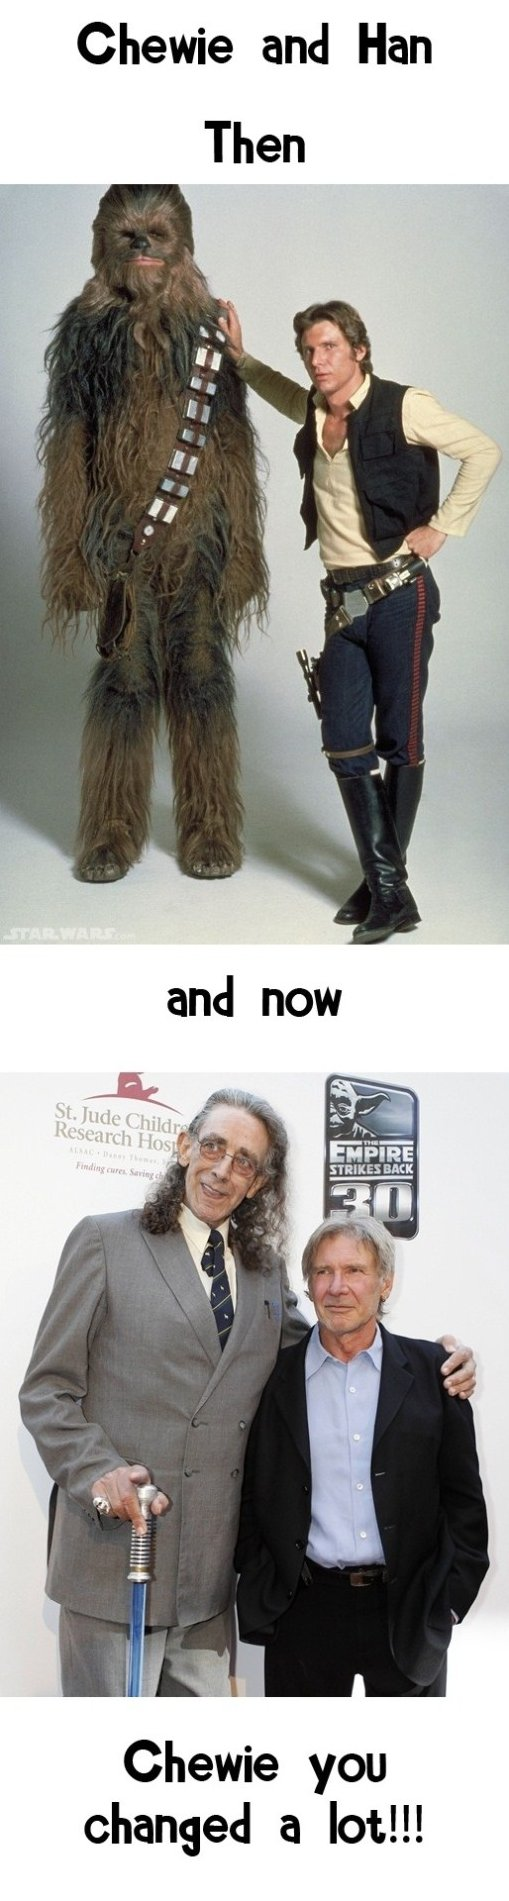 Chewie and Han Now and Then